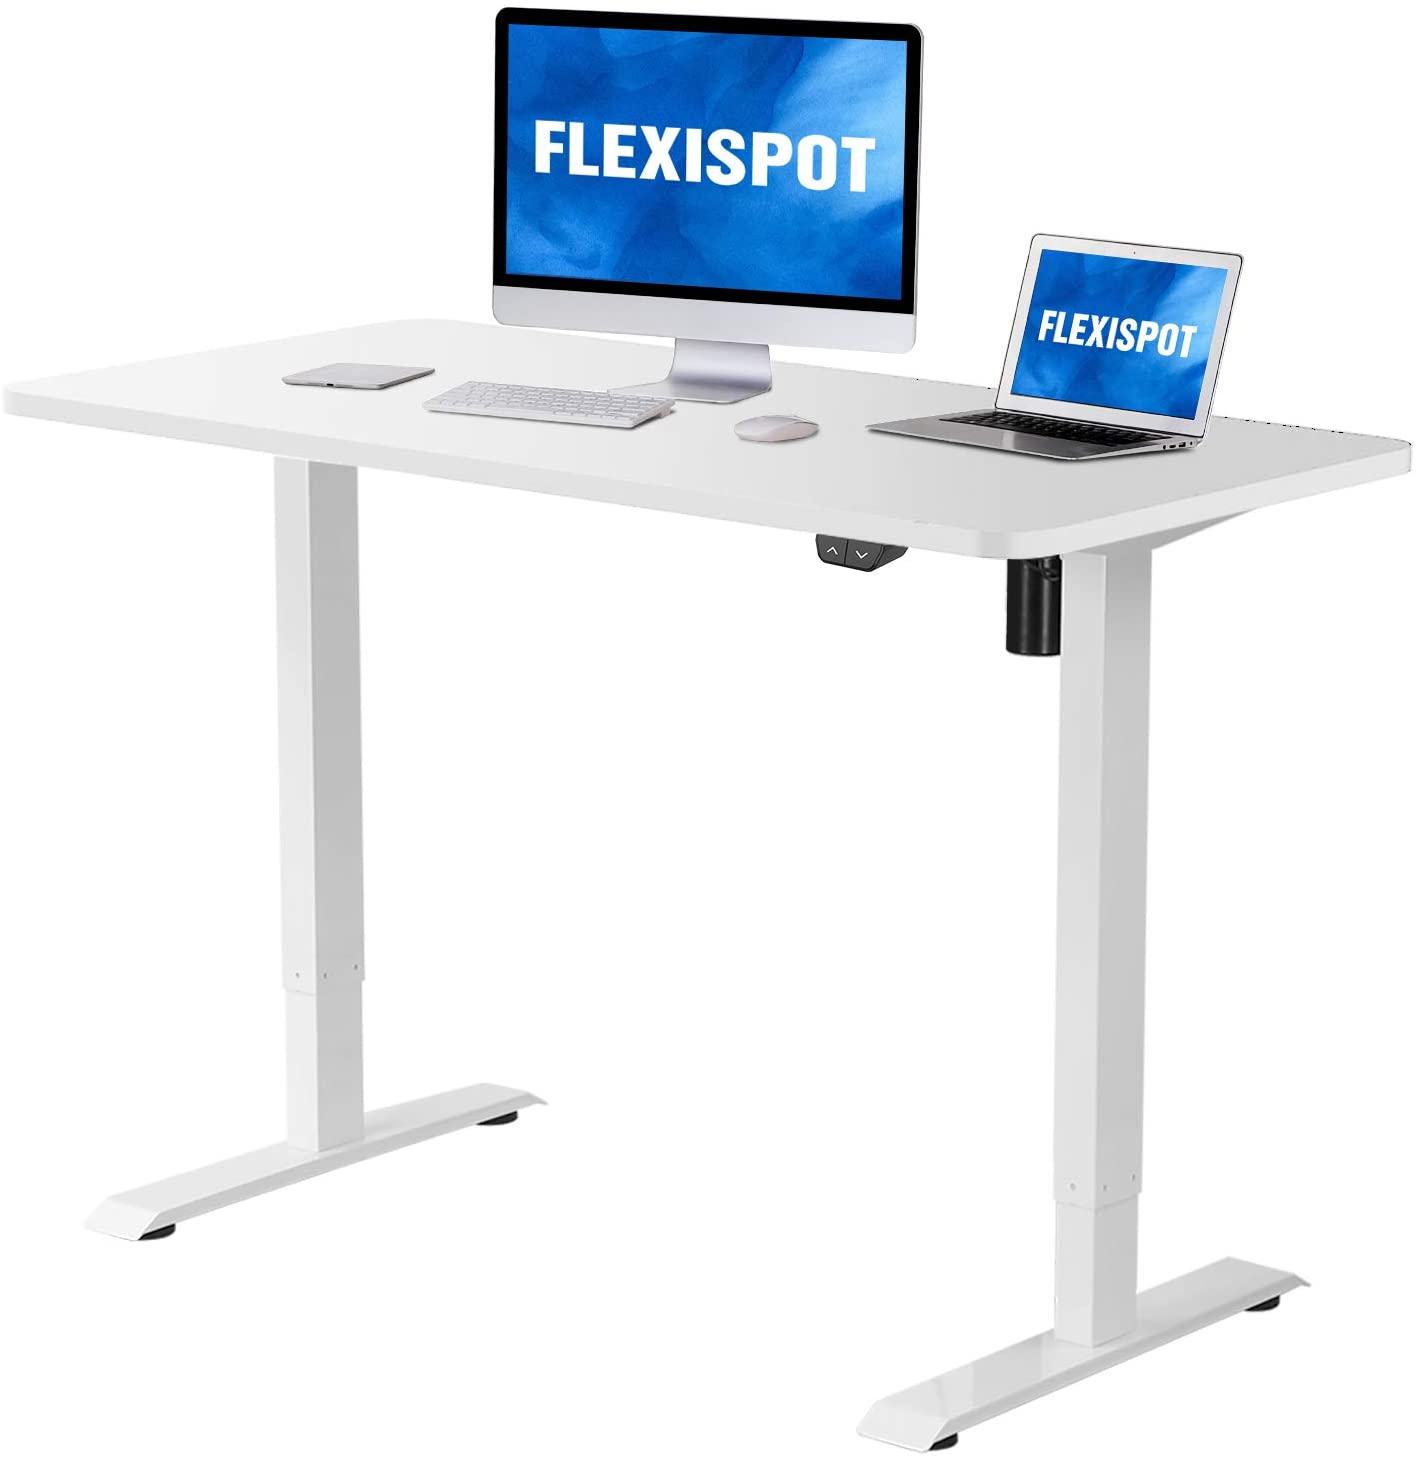 Flexispot Electric Standing Desk Height Adjustable Desk, 48 x 30 Inches Sit Stand Desk